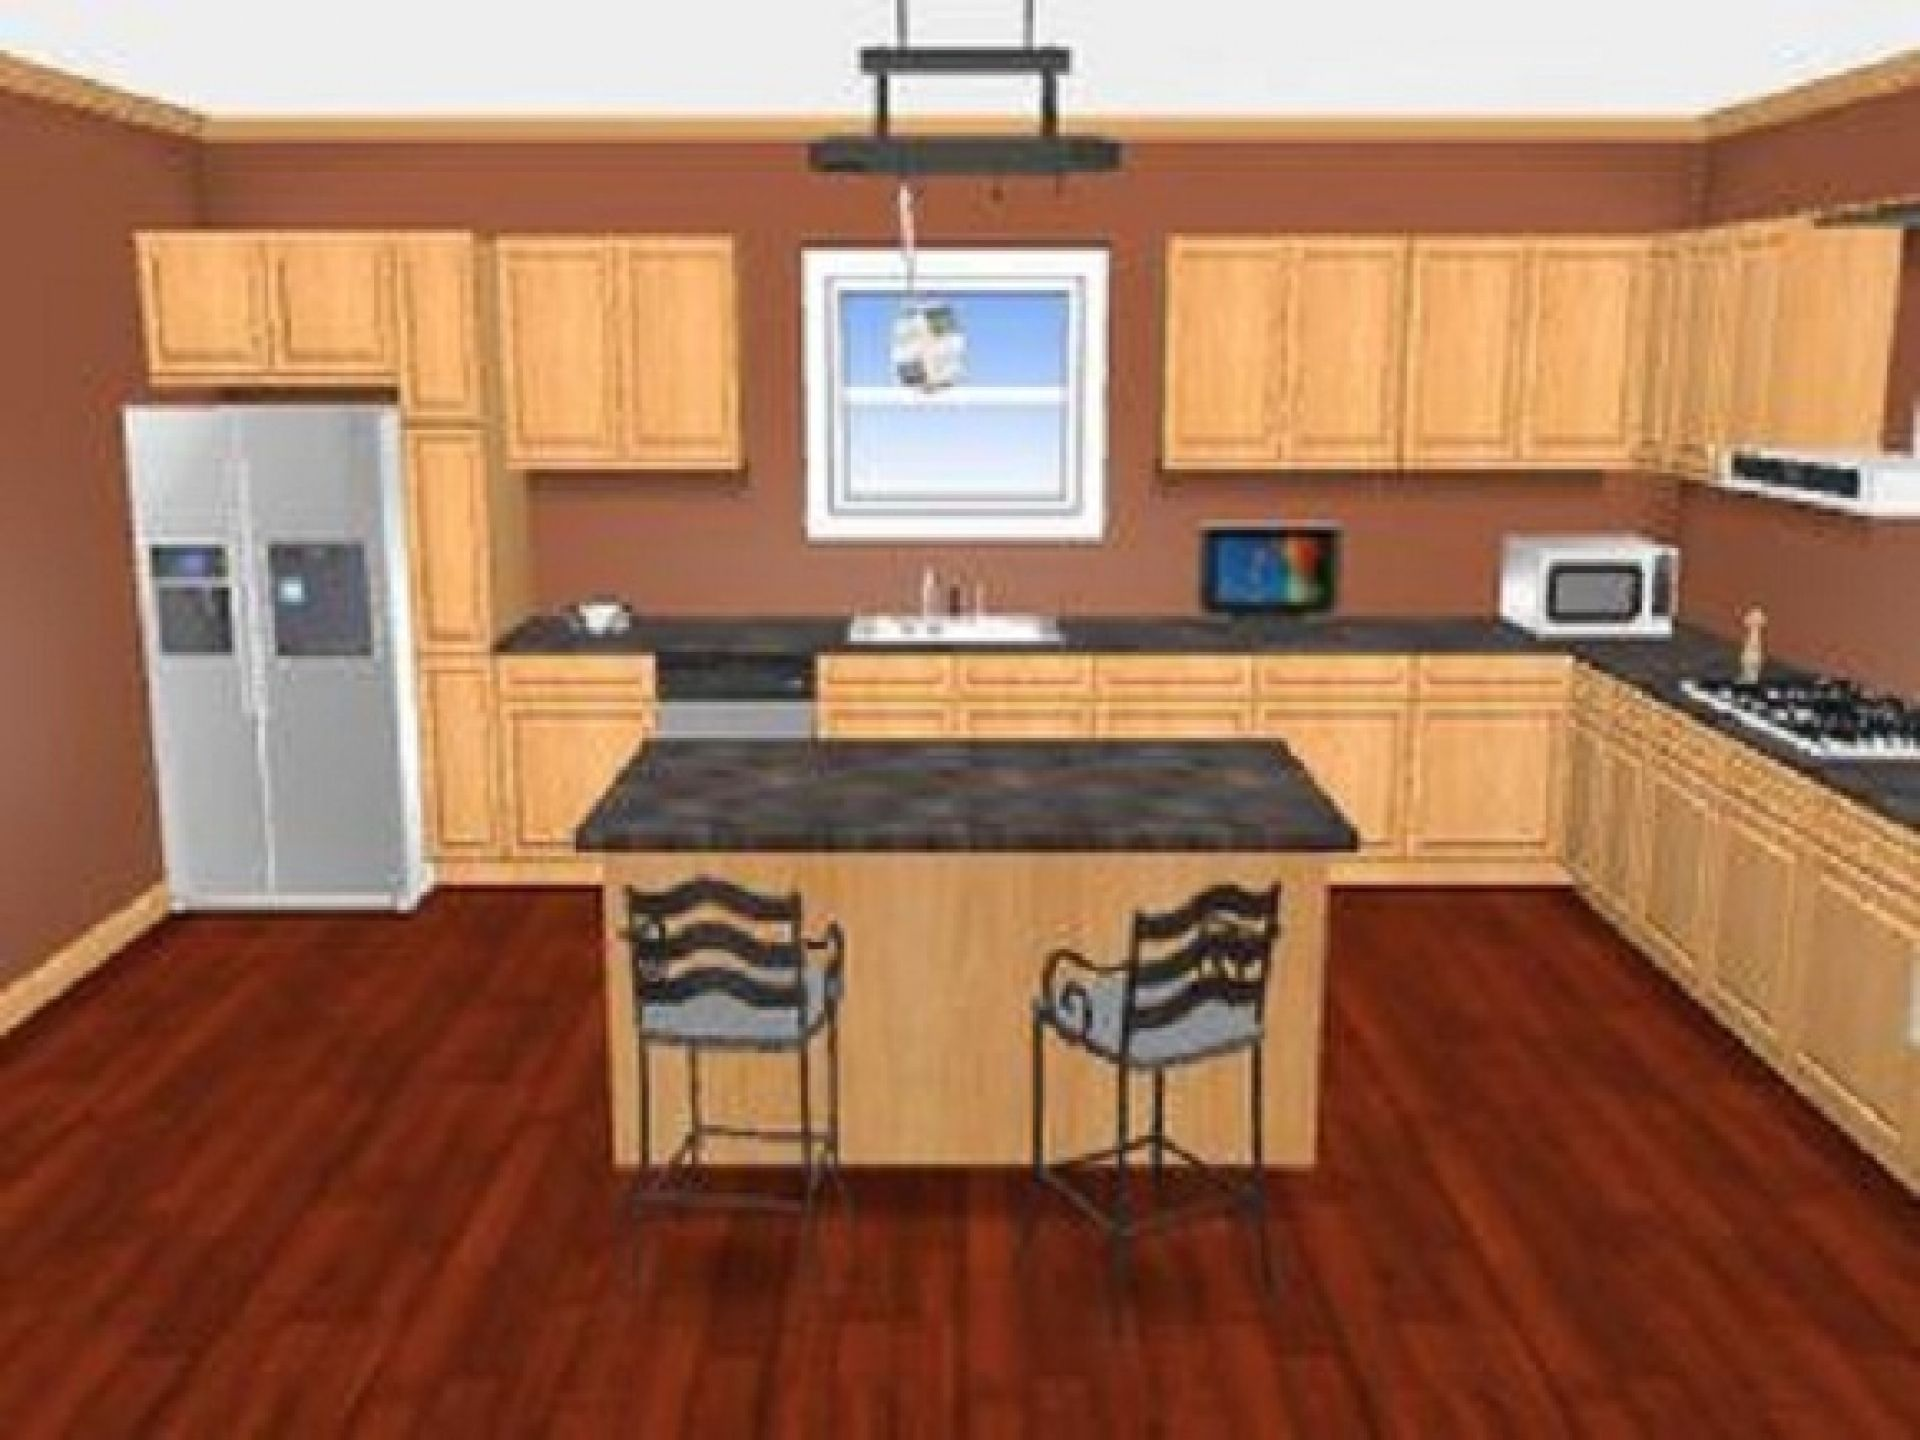 Design A Virtual Kitchen Online Free Pin By Annora On Home Interior Kitchen Cabinets Kitchen Design